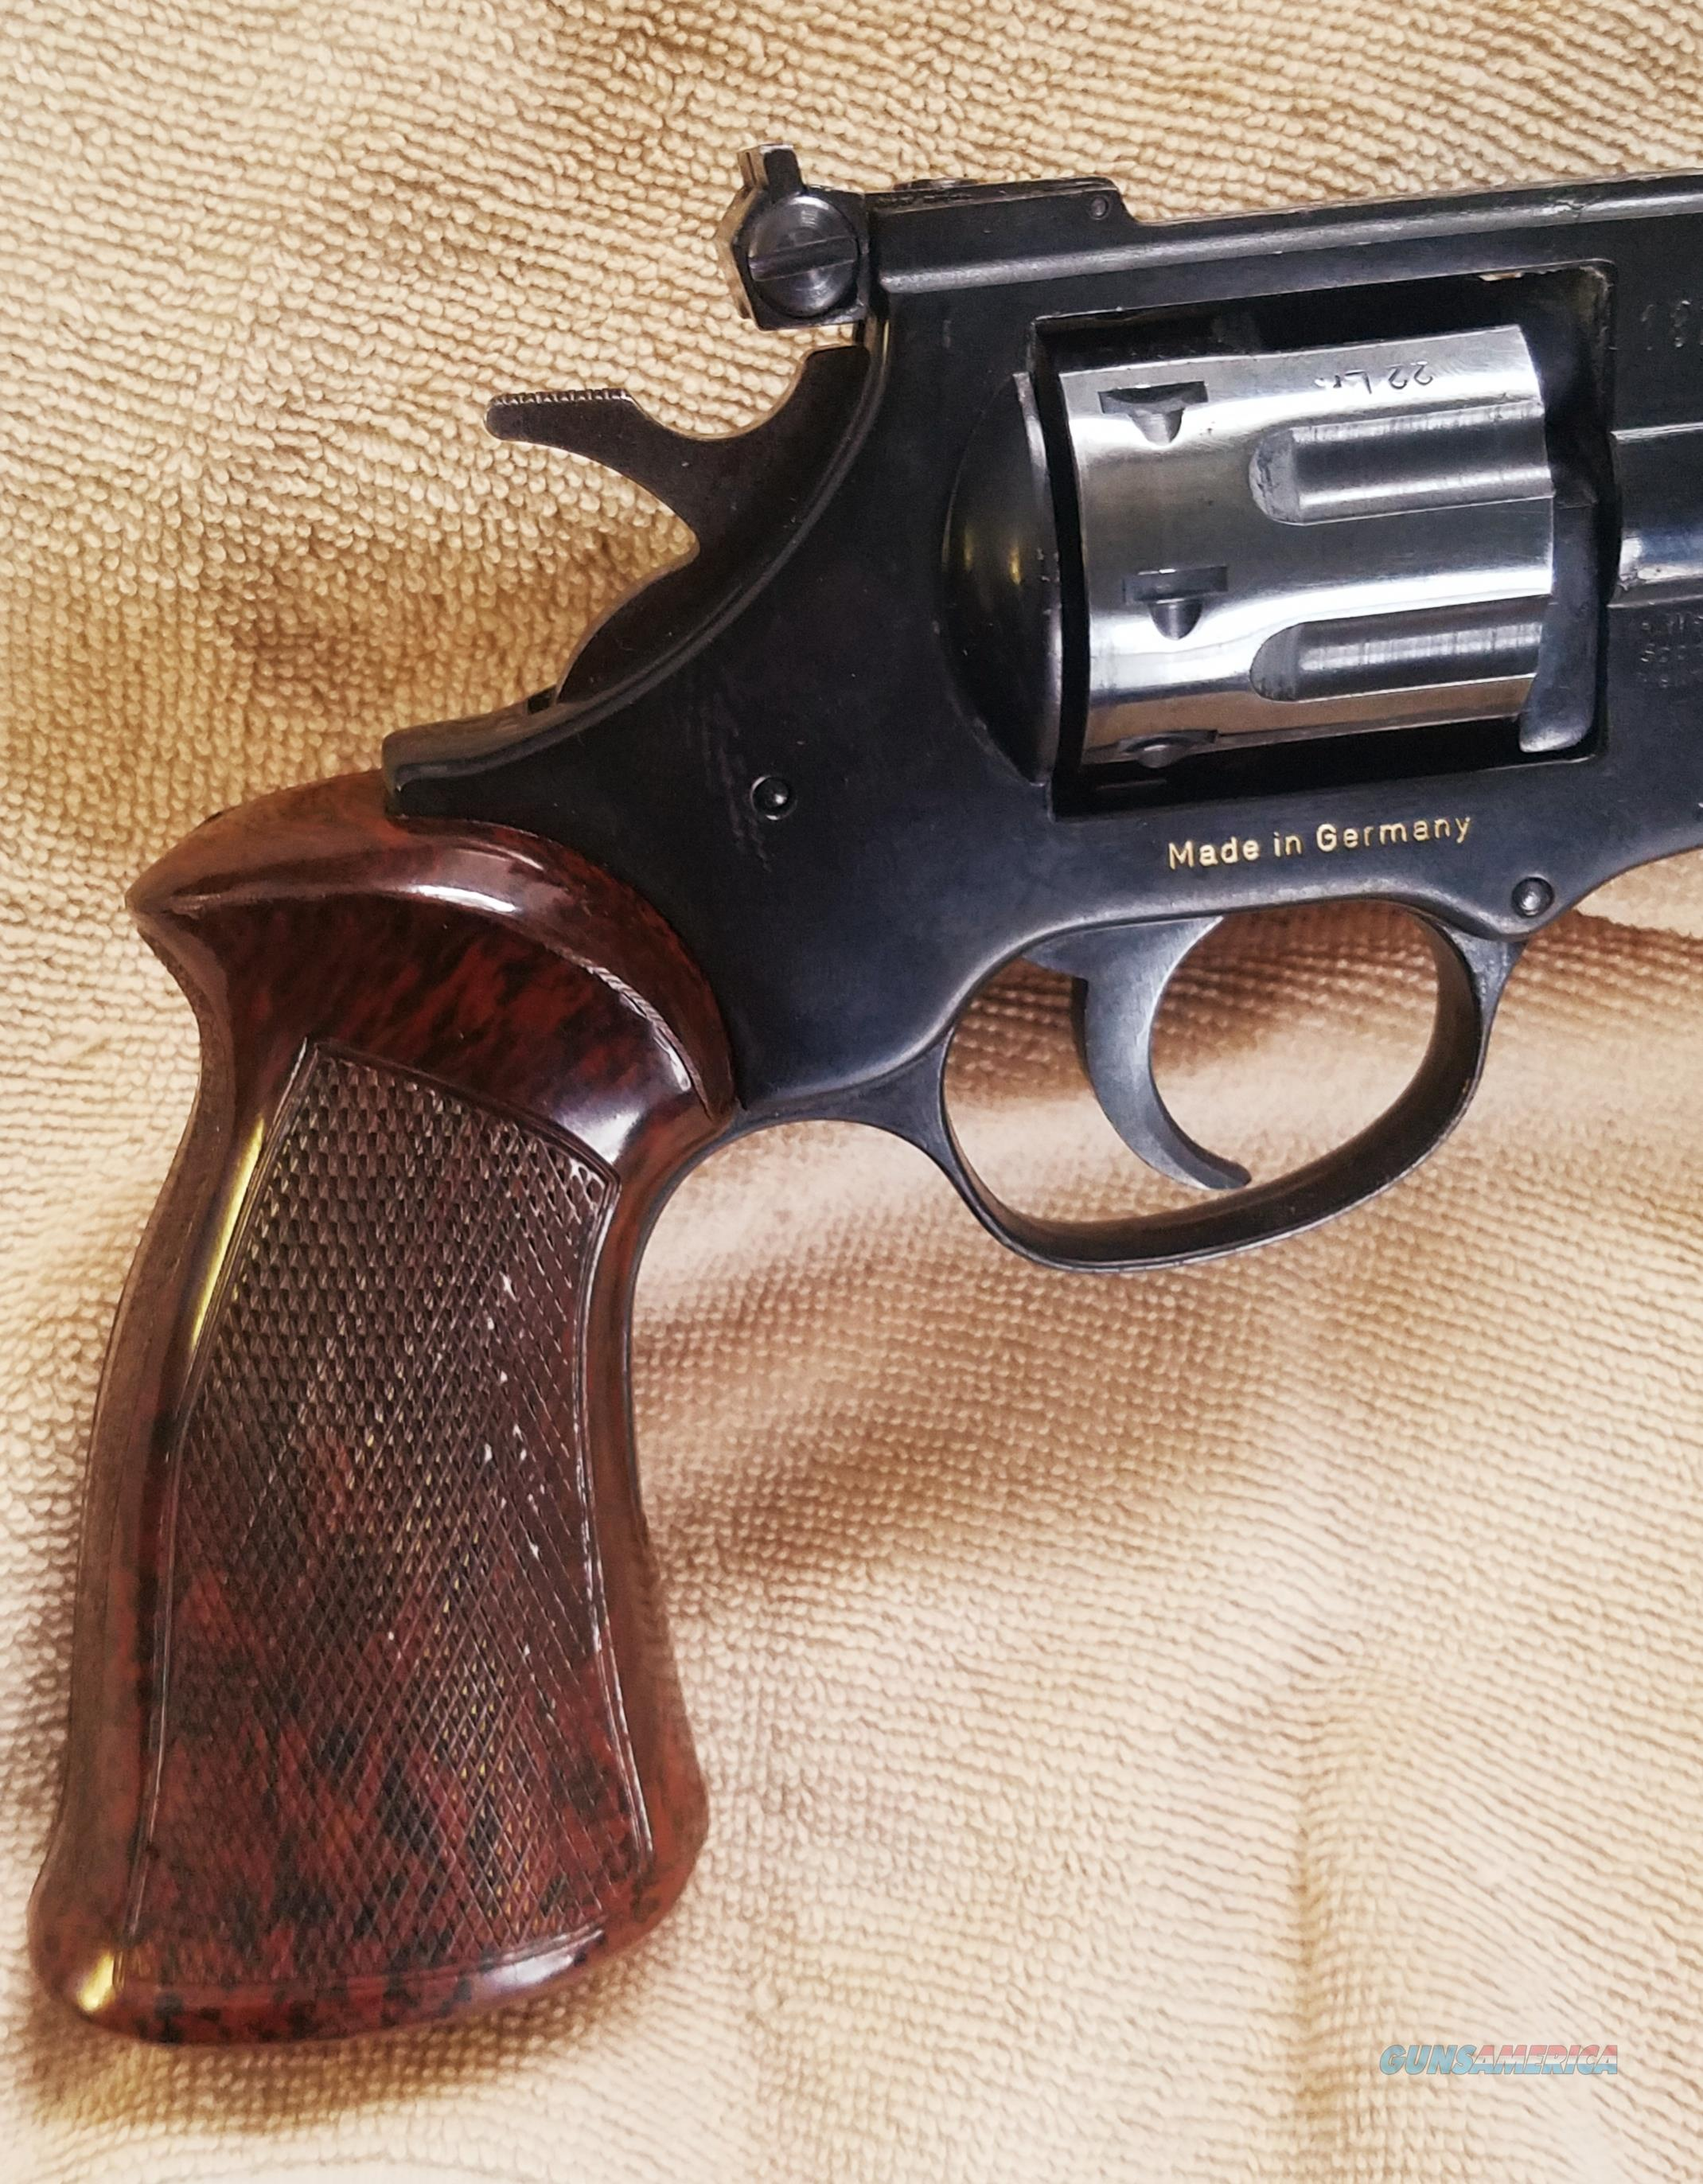 22 Cal Revolver Made In Germany